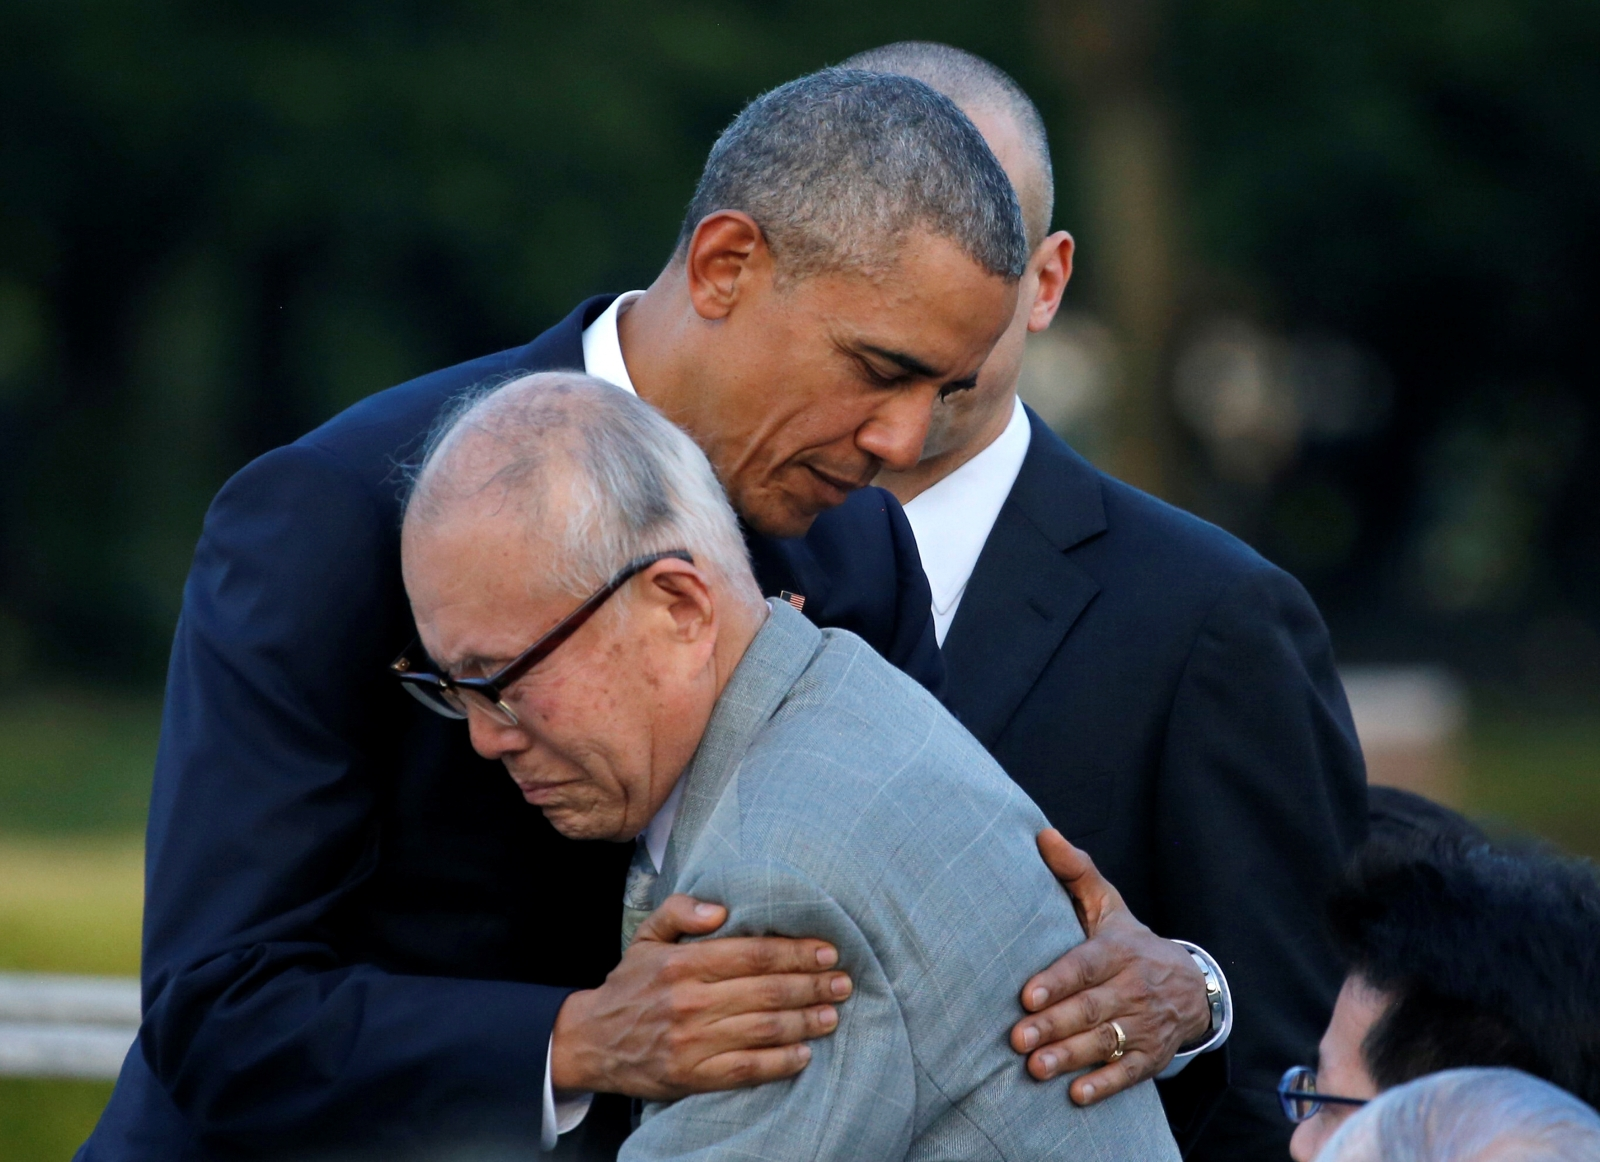 Obama hugs a Hiroshima survivor